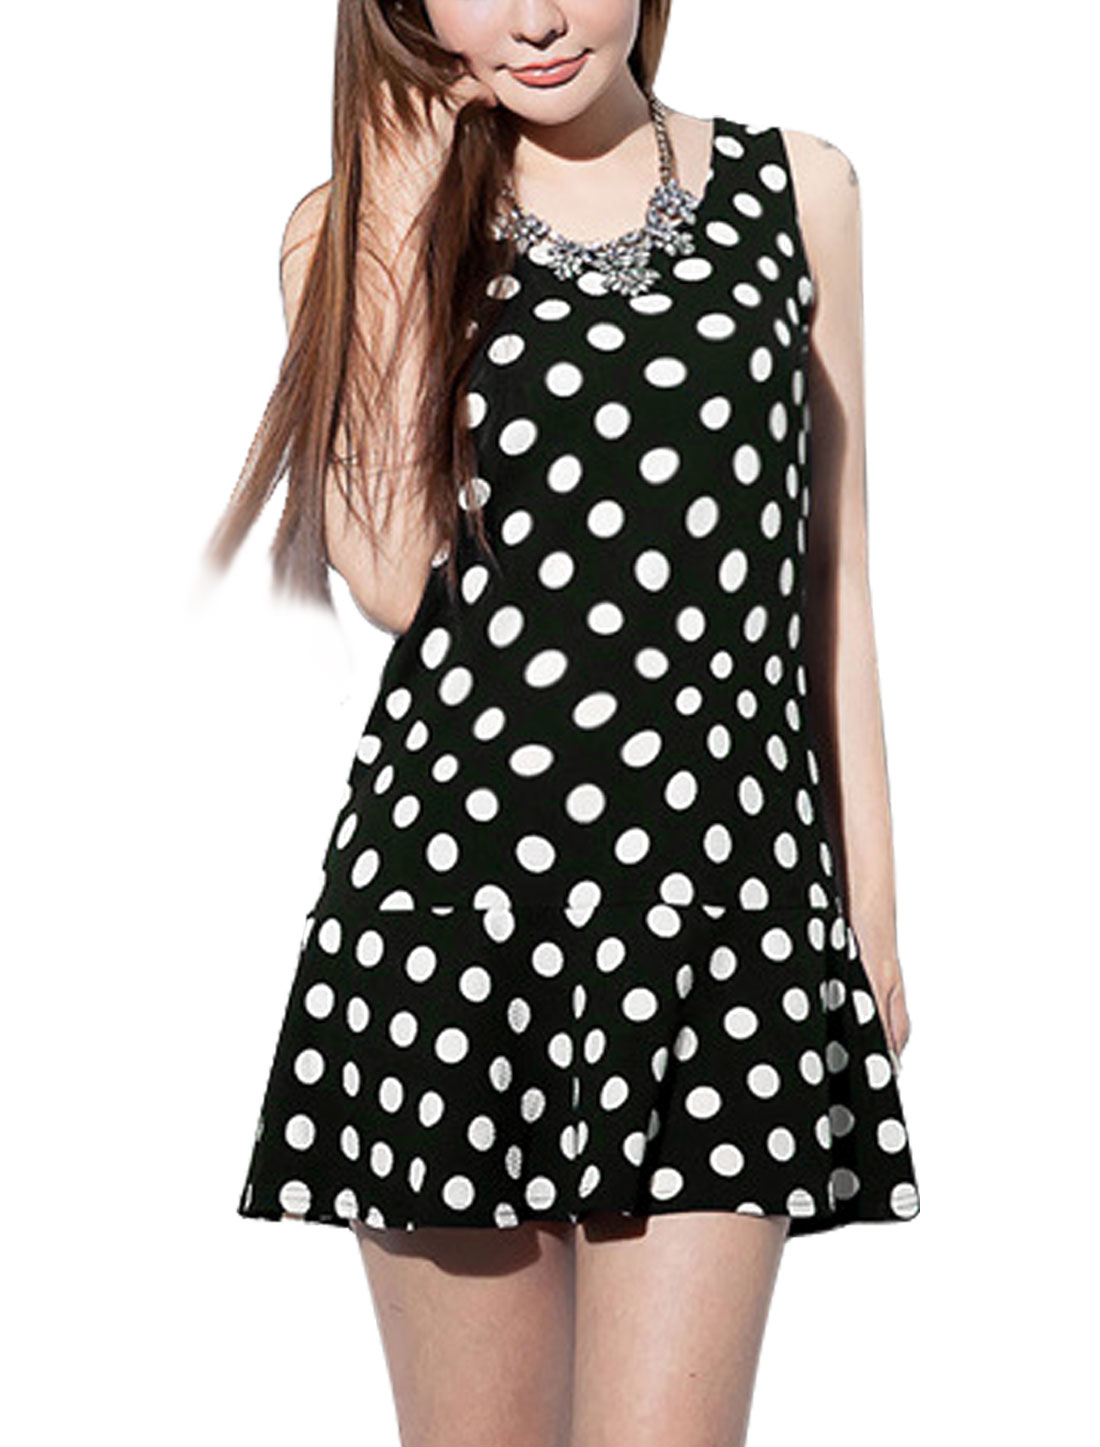 Women Casual Round Neck Sleeveless Dots Prints Peplum Top Black S